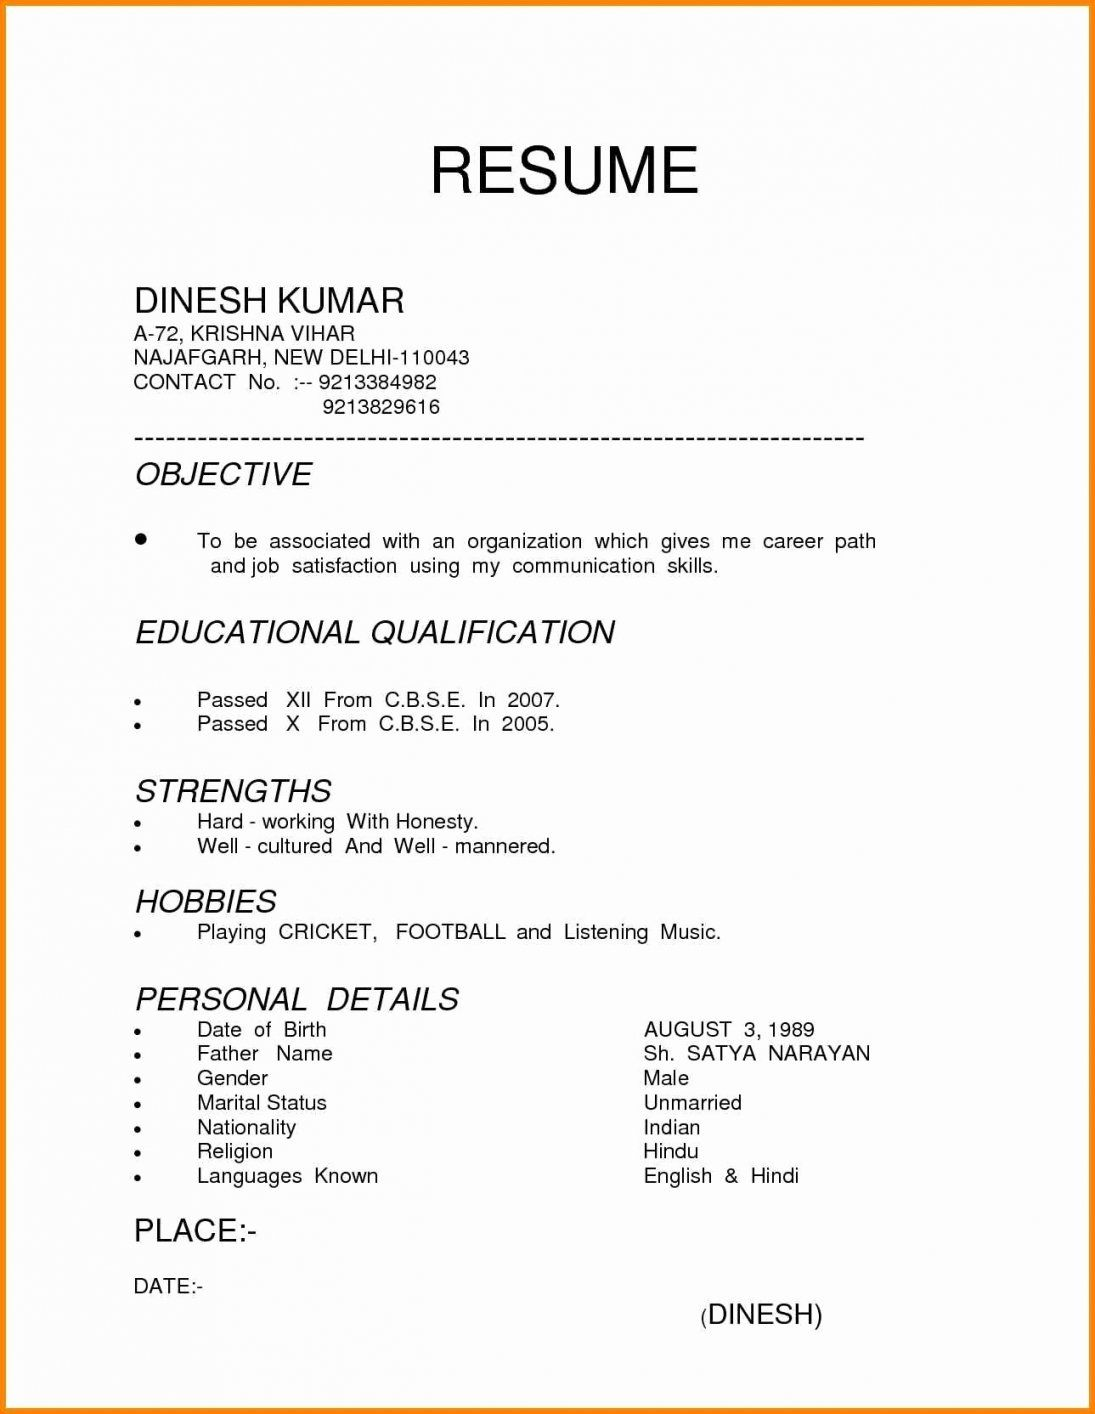 different resume formats format examples for freshers types of resumes samples reddit Resume Different Types Of Resumes Samples